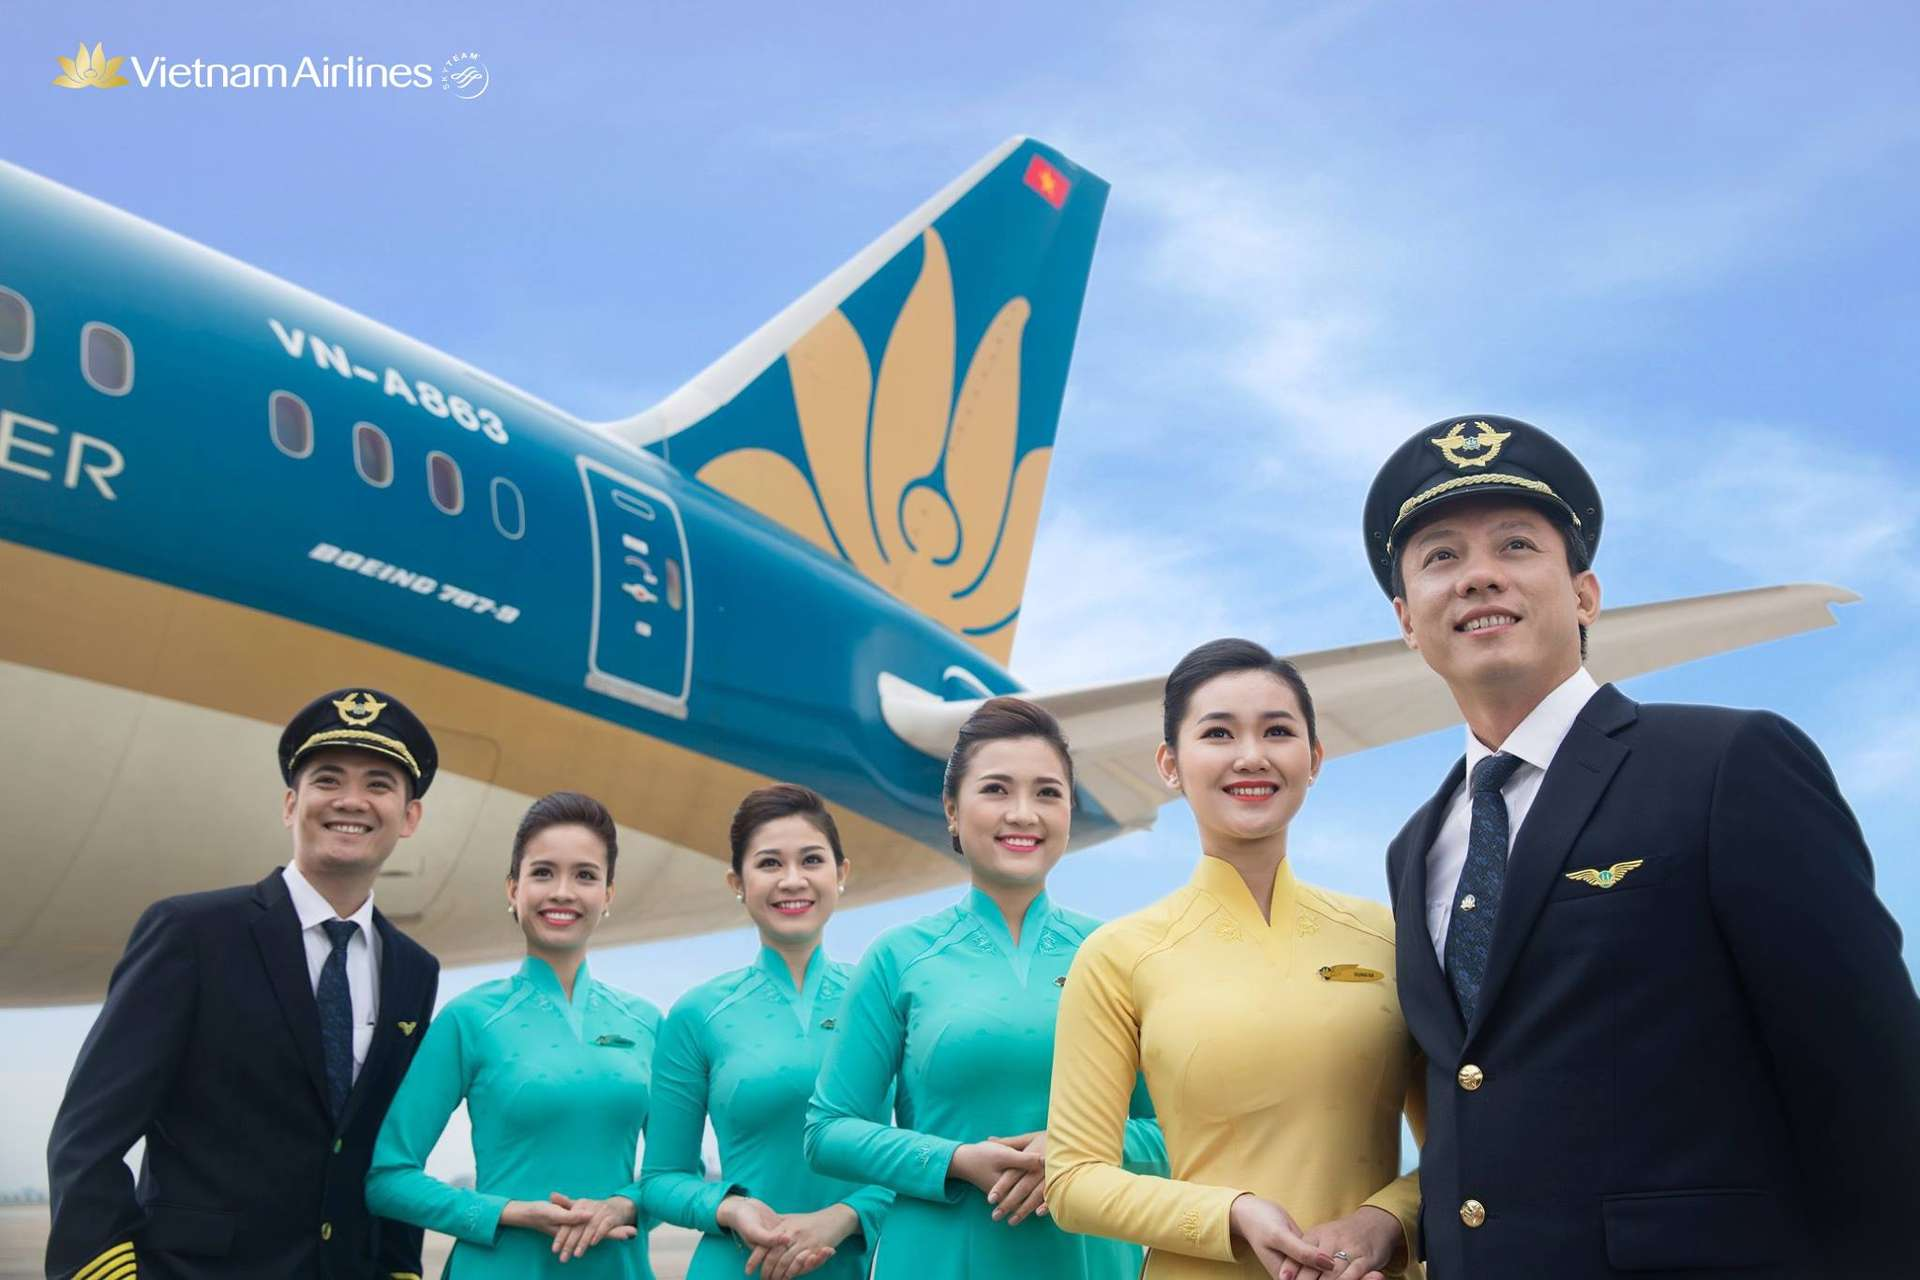 Vietnam Airlines Online Booking Get Vietnam Airlines Promotion And Cheap Flight Tickets On Traveloka